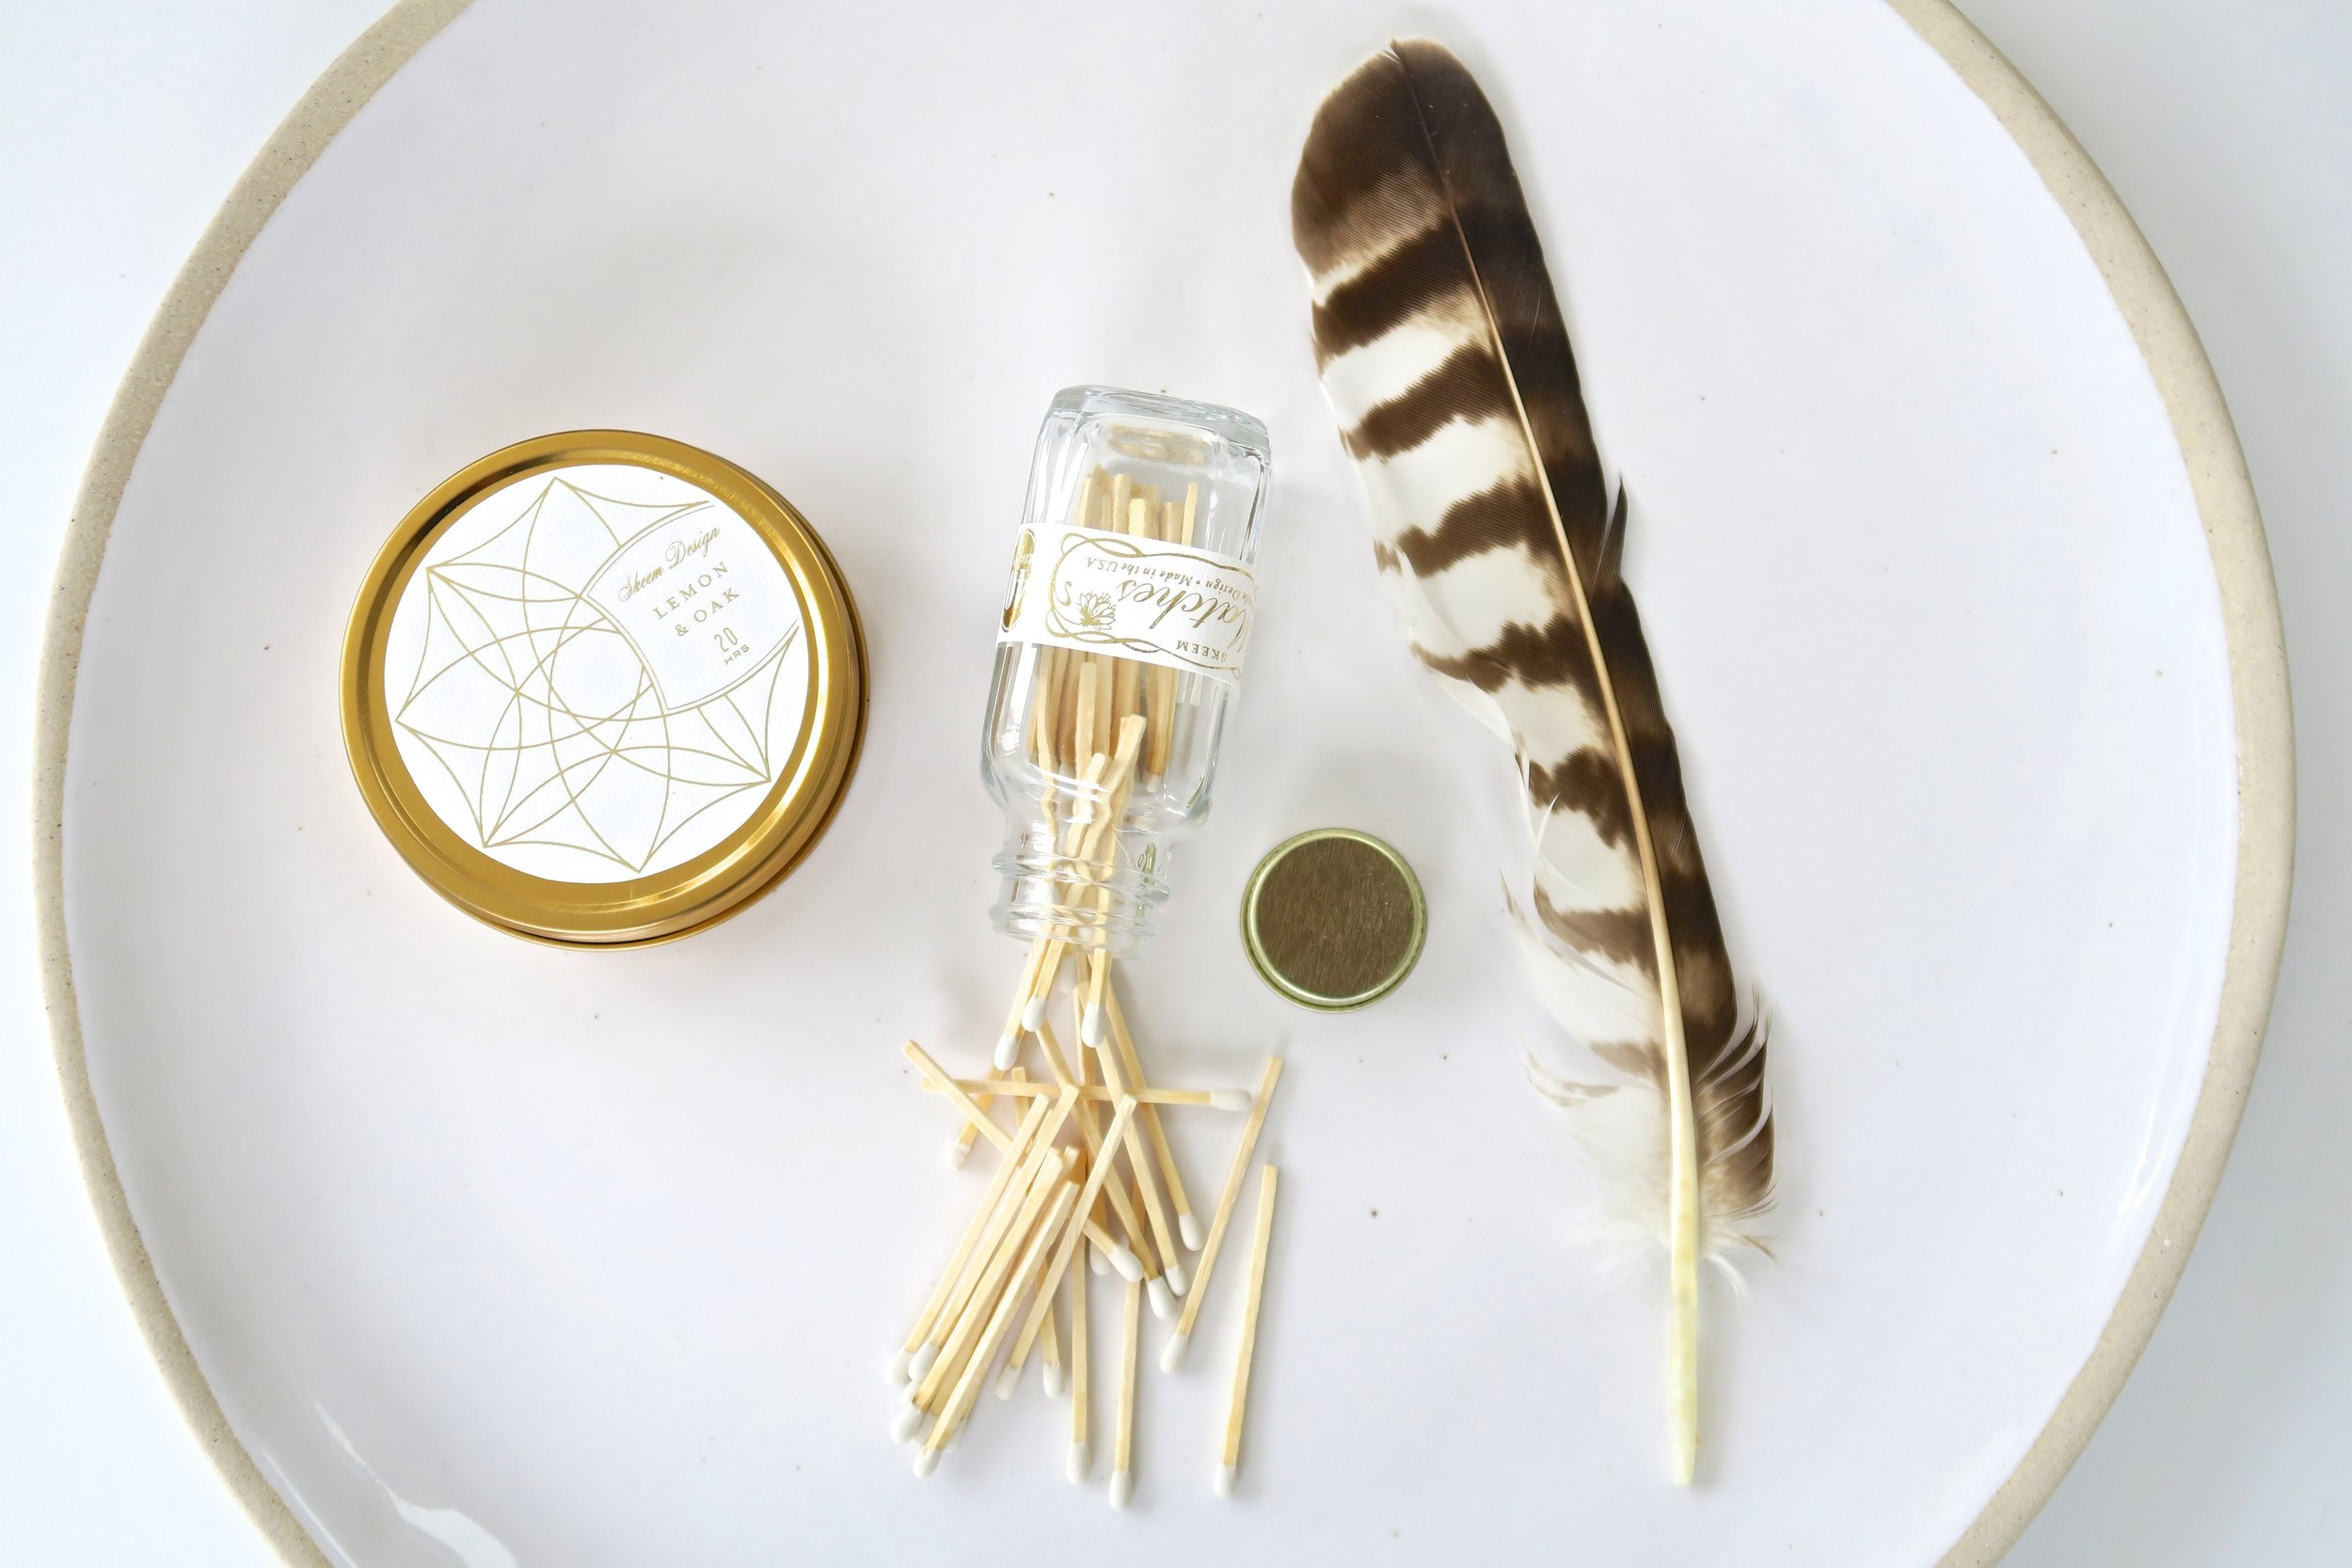 Skeem Design's beautifully designed modern matches and candles.